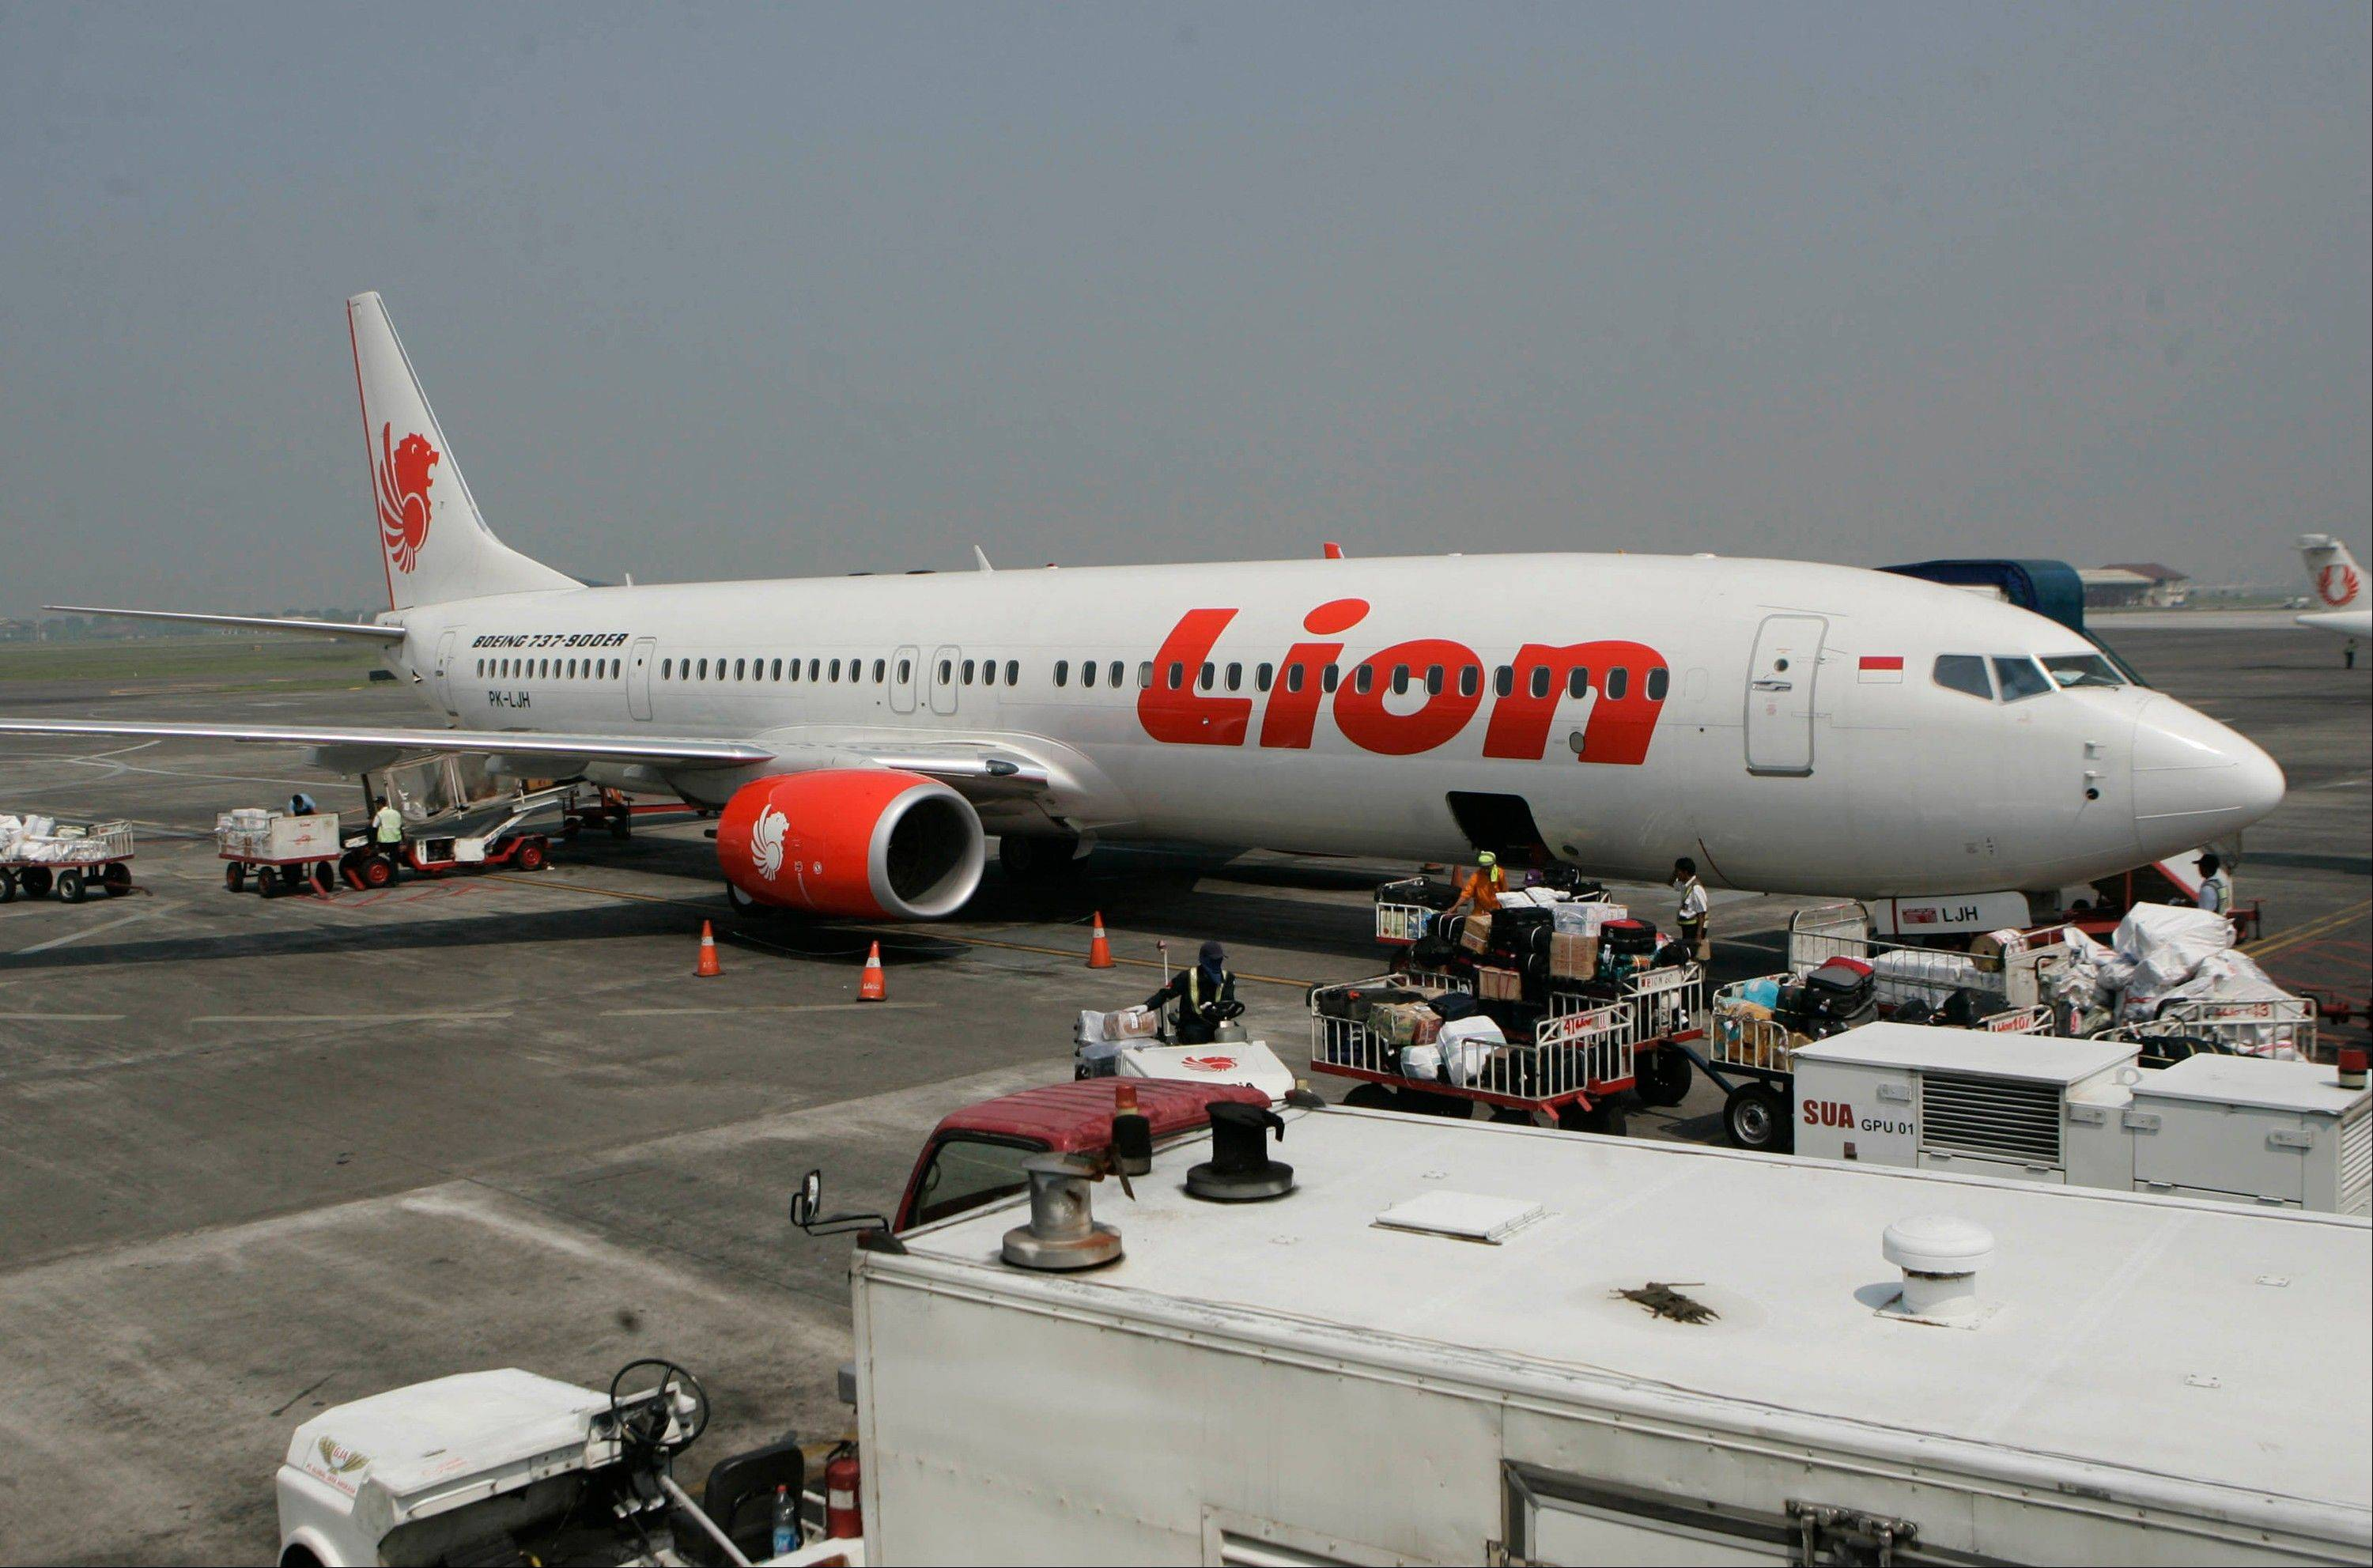 Indonesian airline Lion Air is to buy 234 short to medium range aircraft from Airbus for $24 billion, in what is being billed as the biggest civilian deal in the history of the aircraft manufacturer.